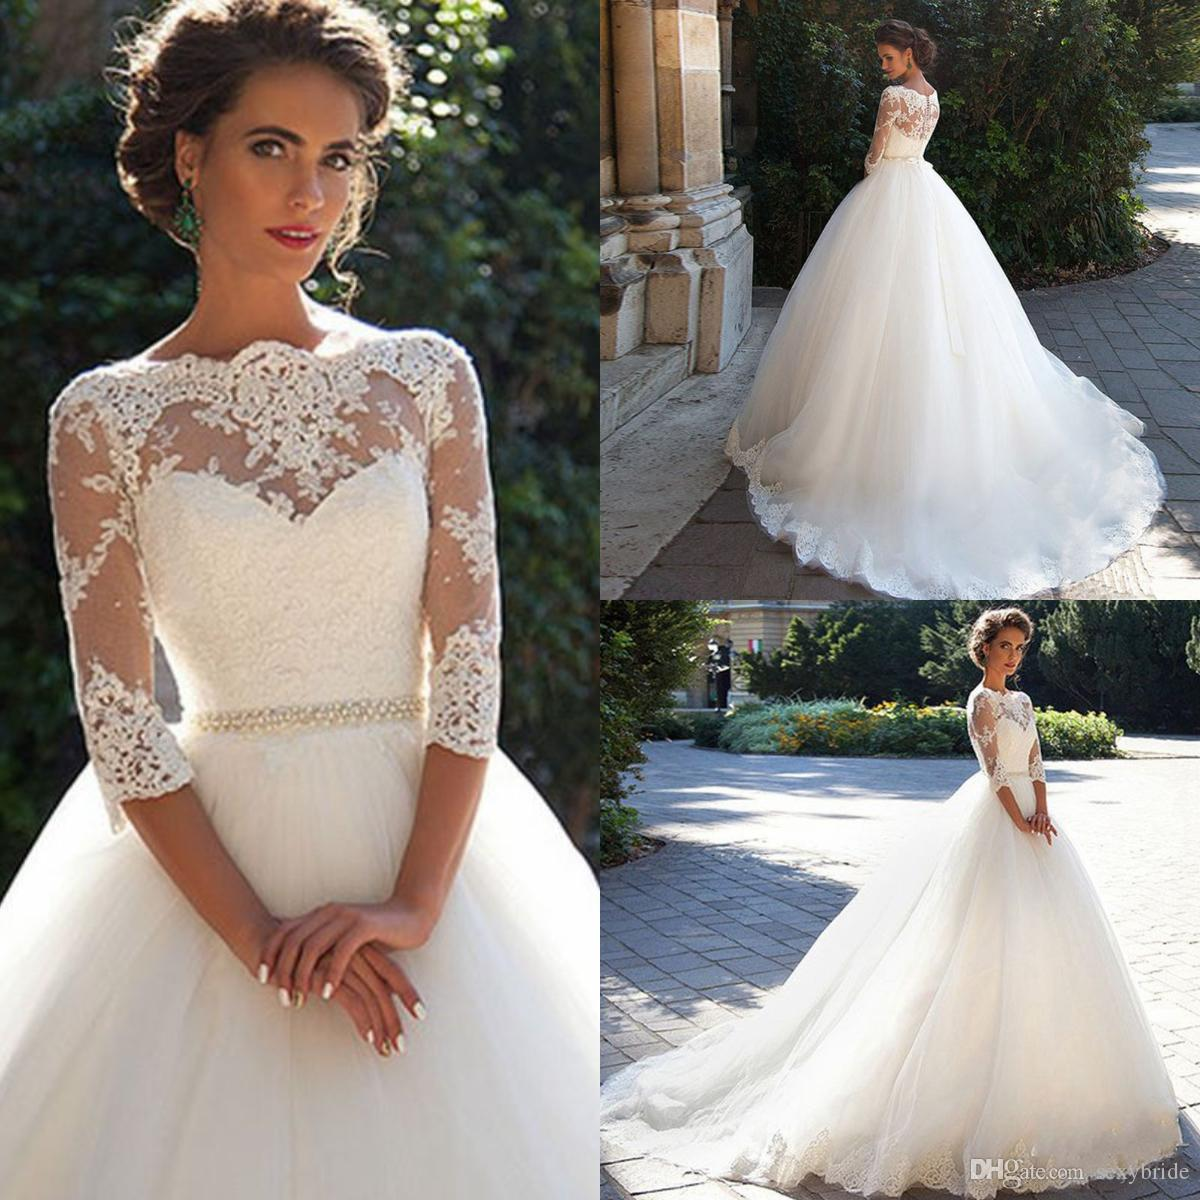 25f29fcb024c5 Elegant Tulle Appliques 3/4 Long Sleeve Lace Wedding Dresses 2018 Back  Zipper Court Train Bridal Ball Gowns For Women With Waist Bow Tulle Ball  Gown Tulle ...